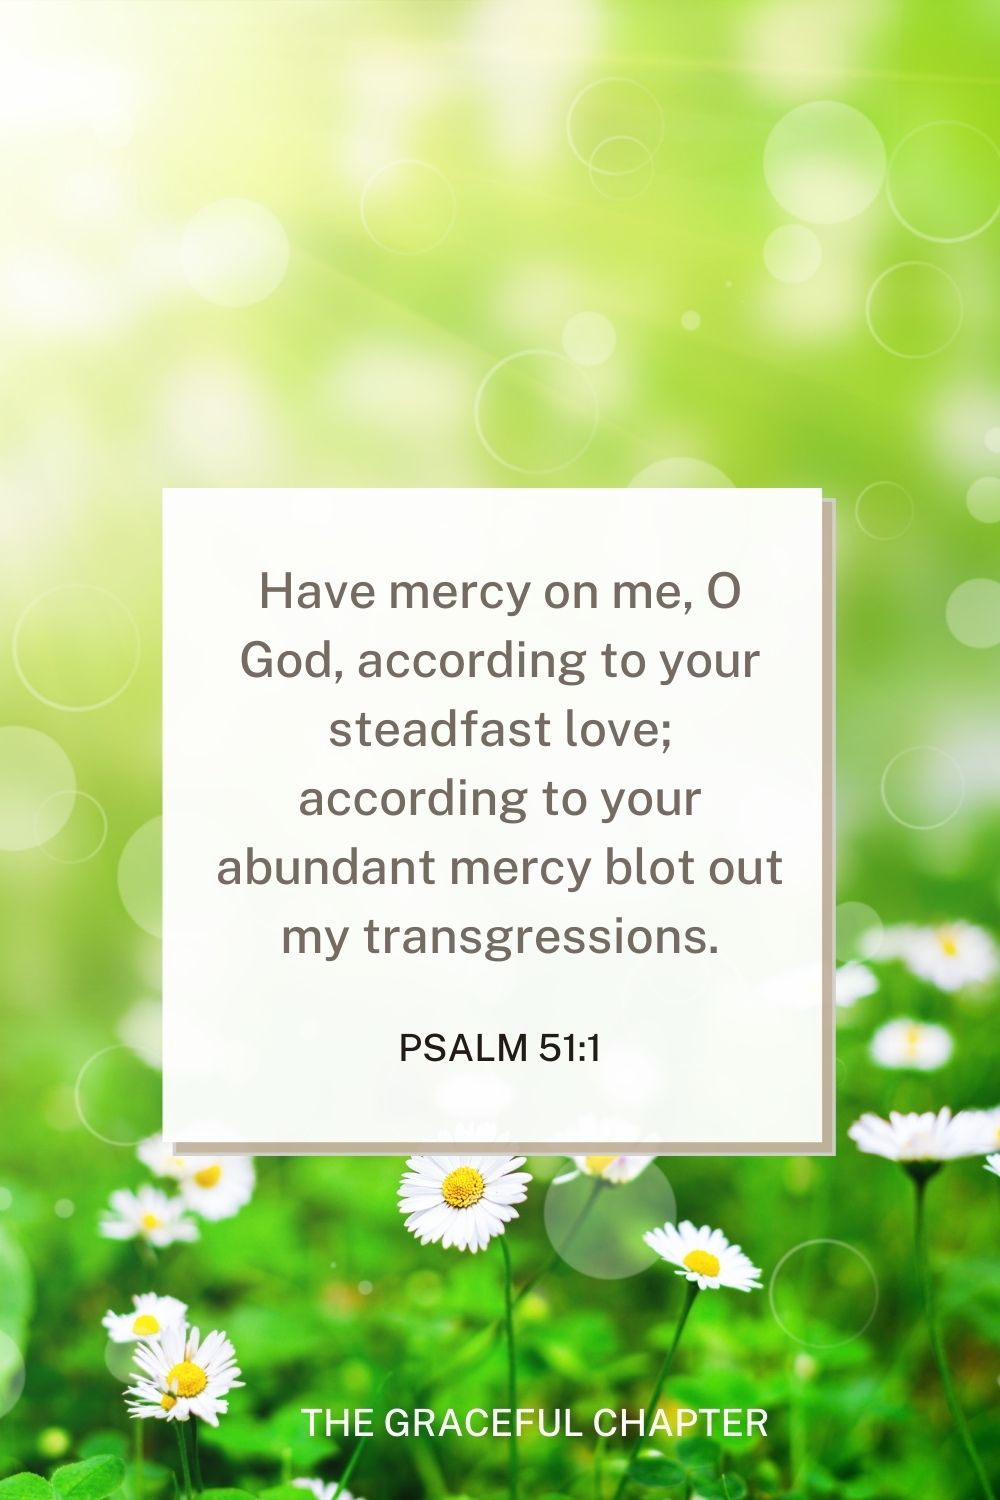 Have mercy on me, O God, according to your steadfast love; according to your abundant mercy blot out my transgressions.Have mercy on me, O God, according to your steadfast love; according to your abundant mercy blot out my transgressions. Psalm 51:1